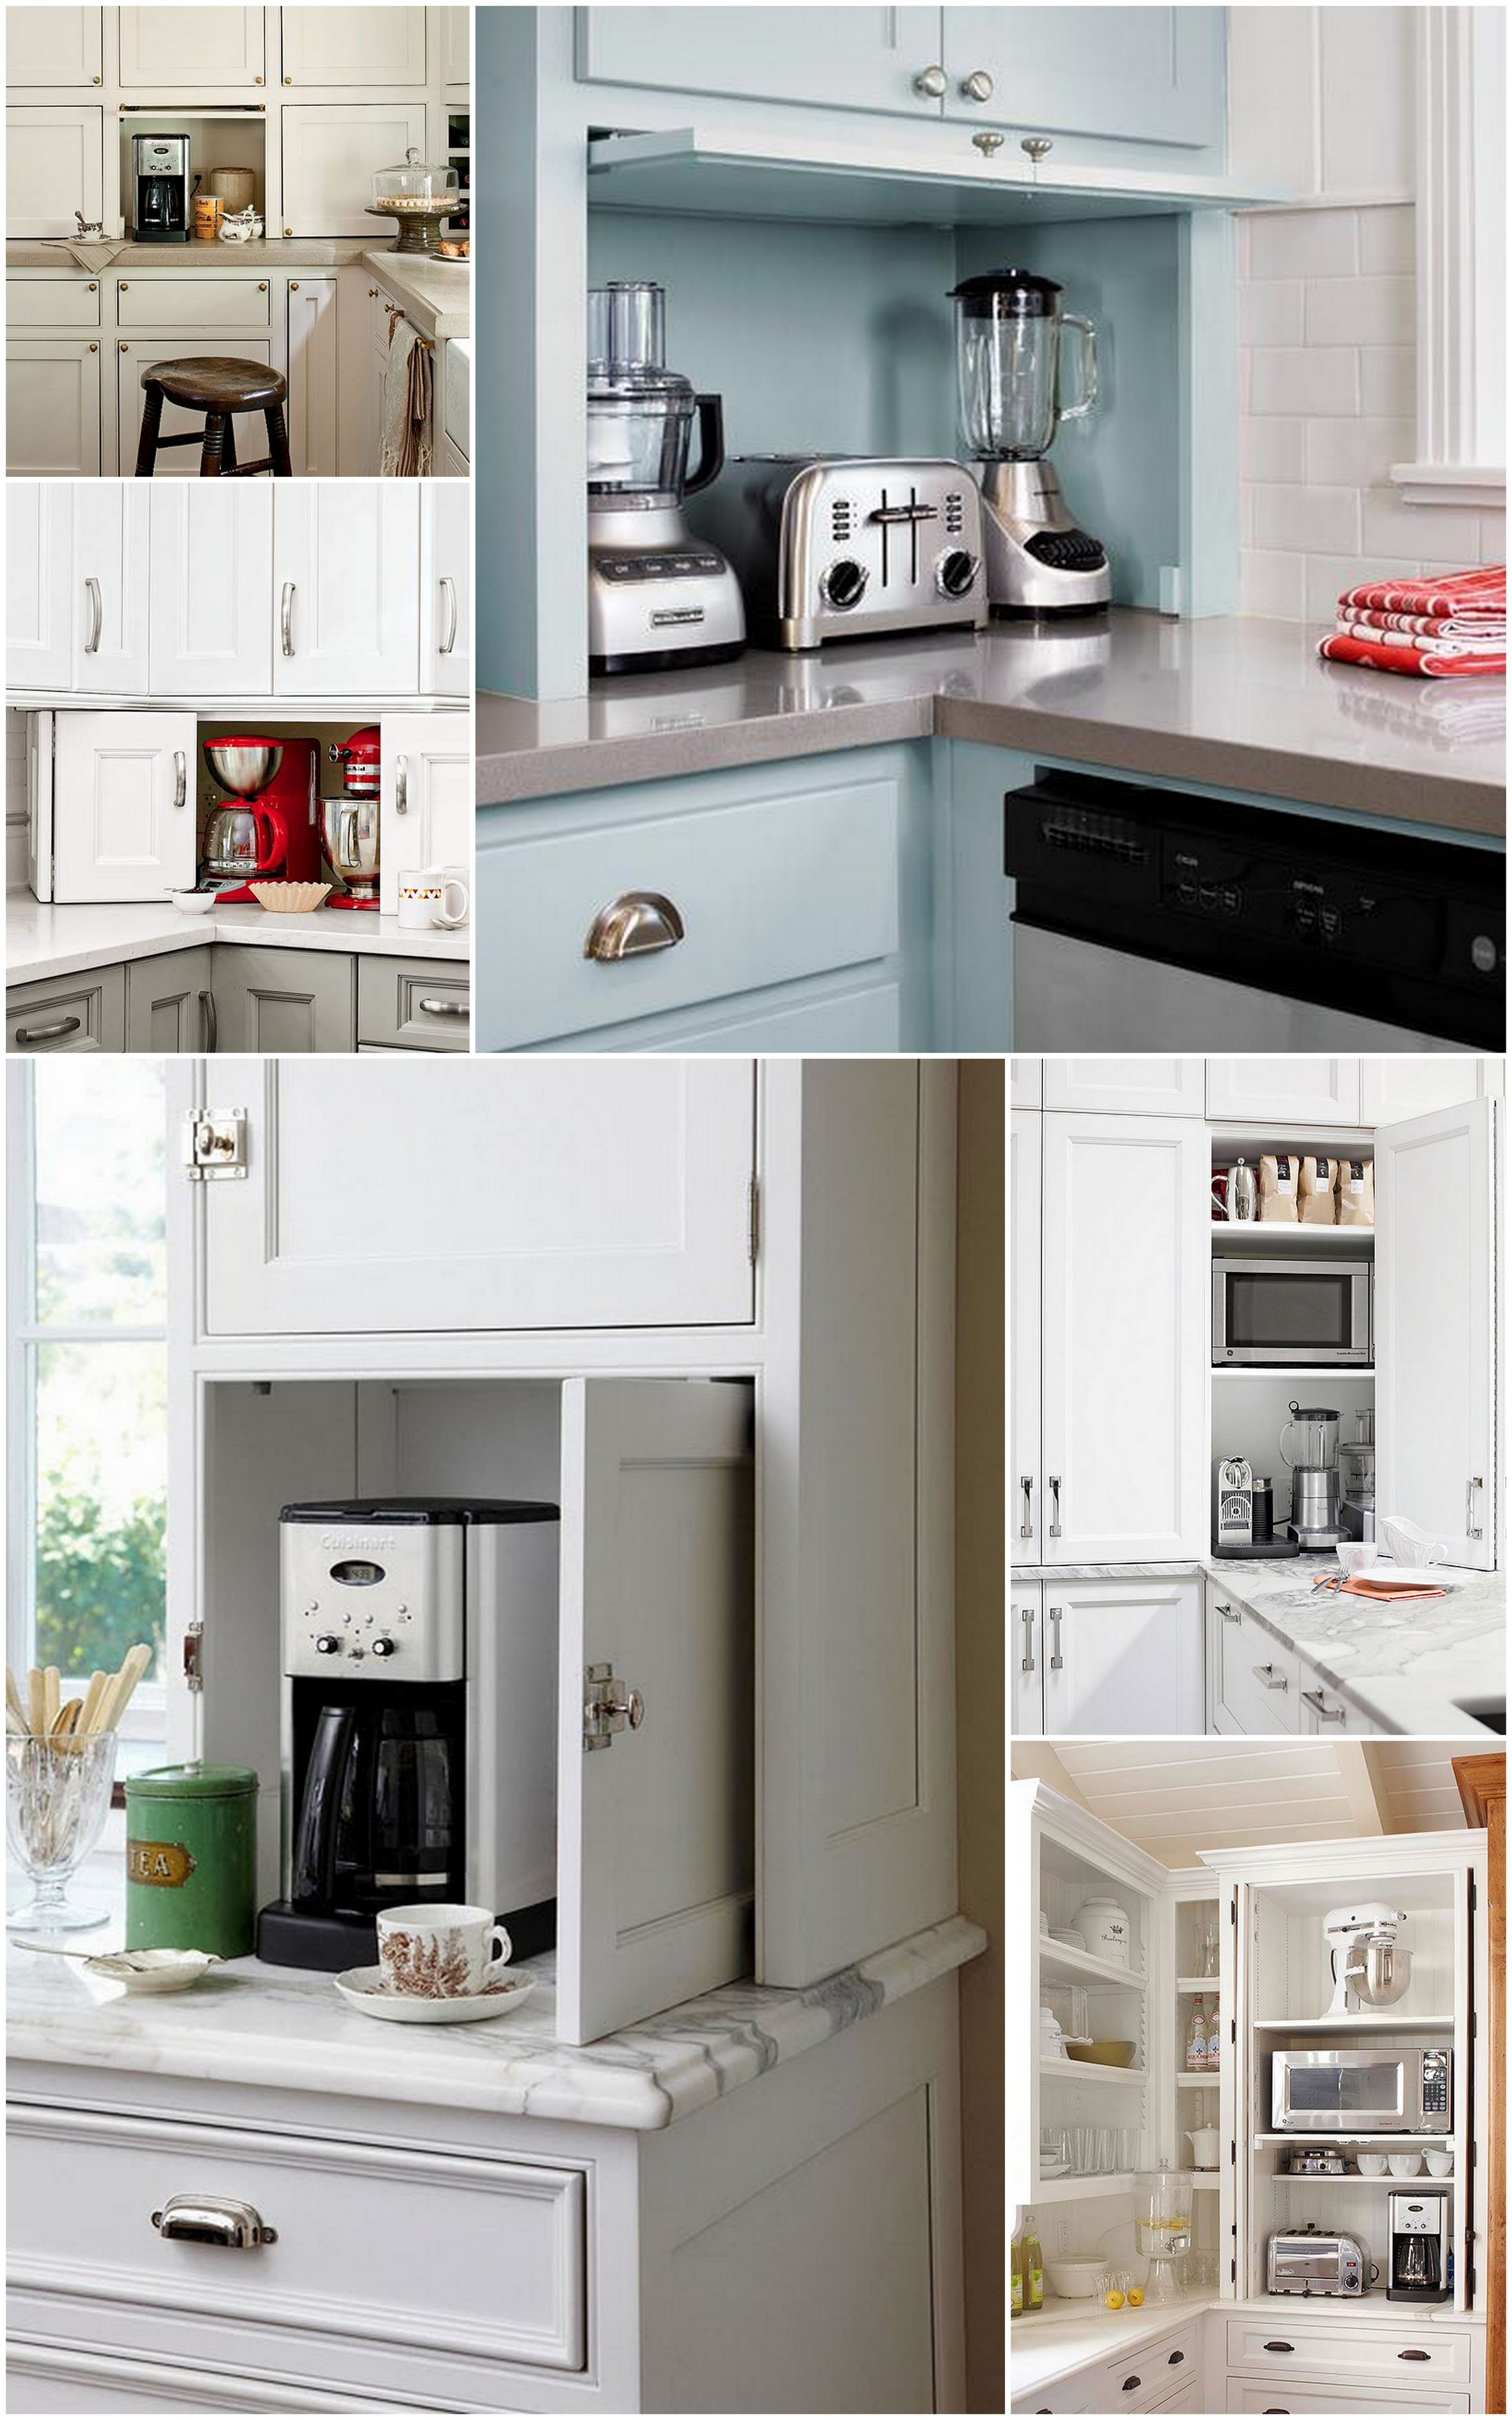 The Ideal Kitchen: Appliance Storage | Live Simply by Annie